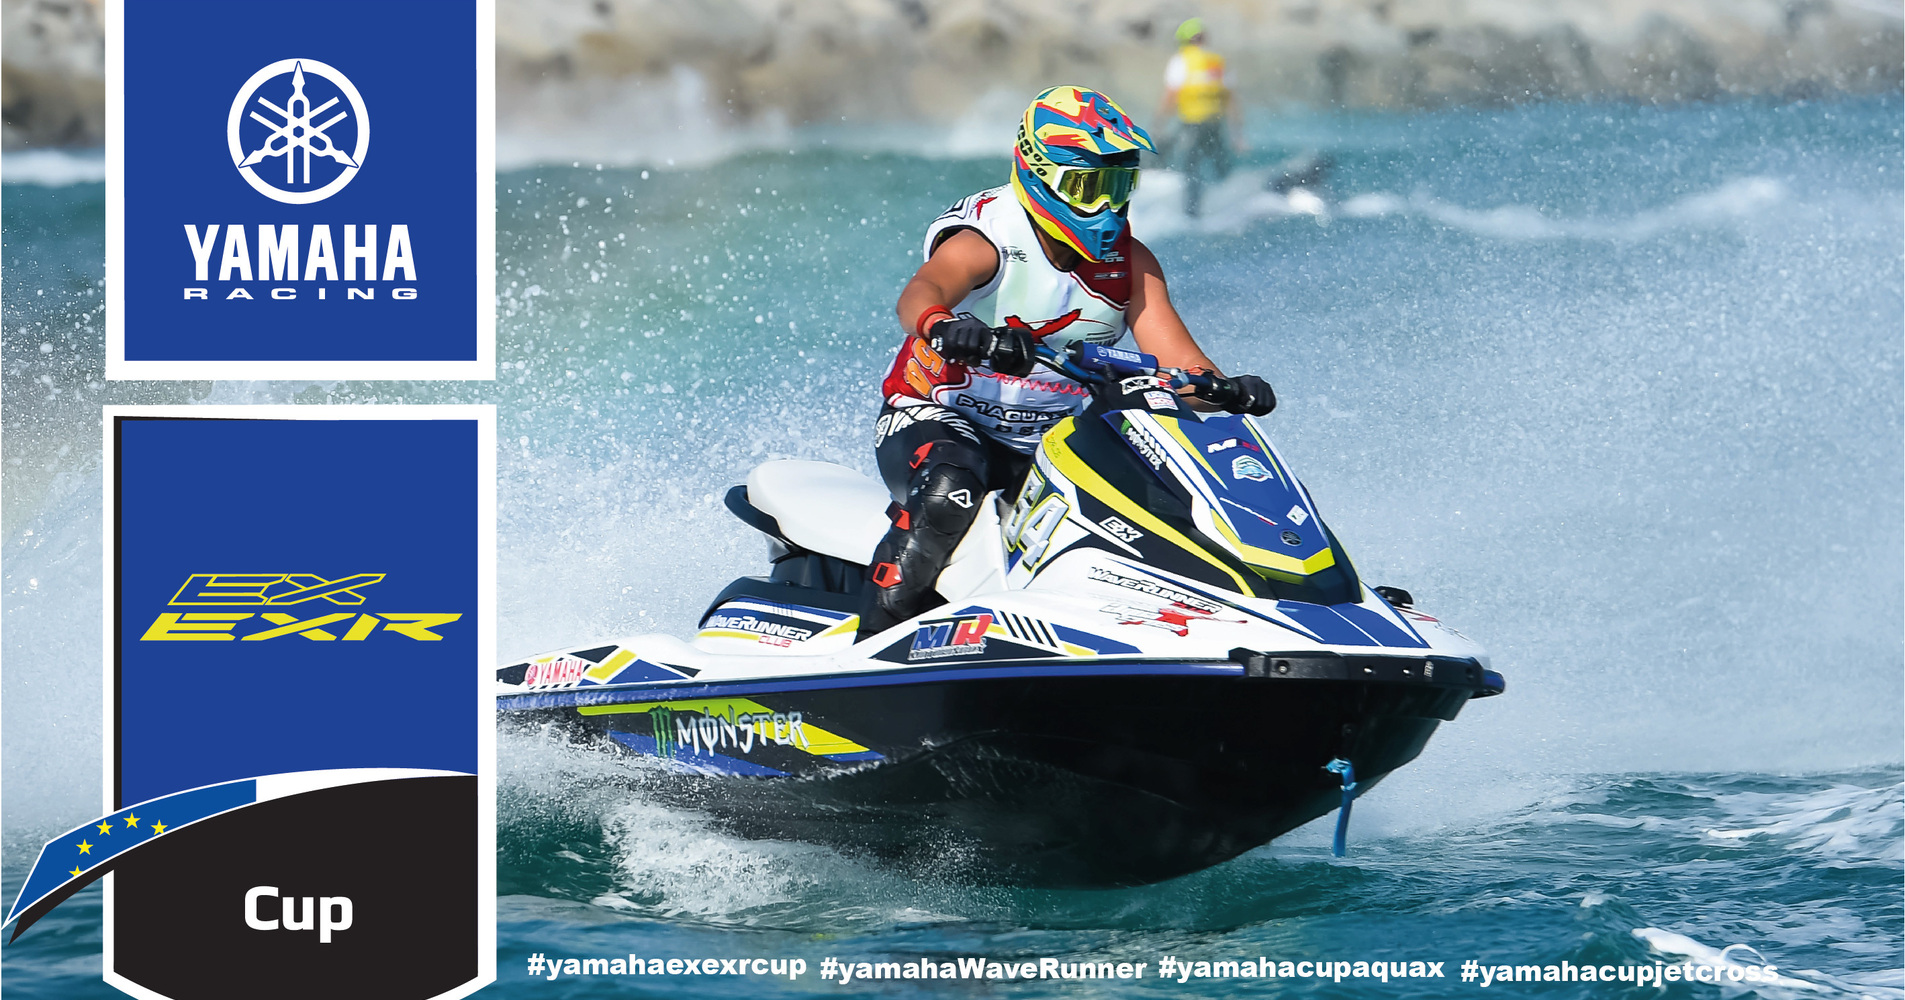 The Yamaha EX/EXR Cup kicks off this weekend in La Seyne